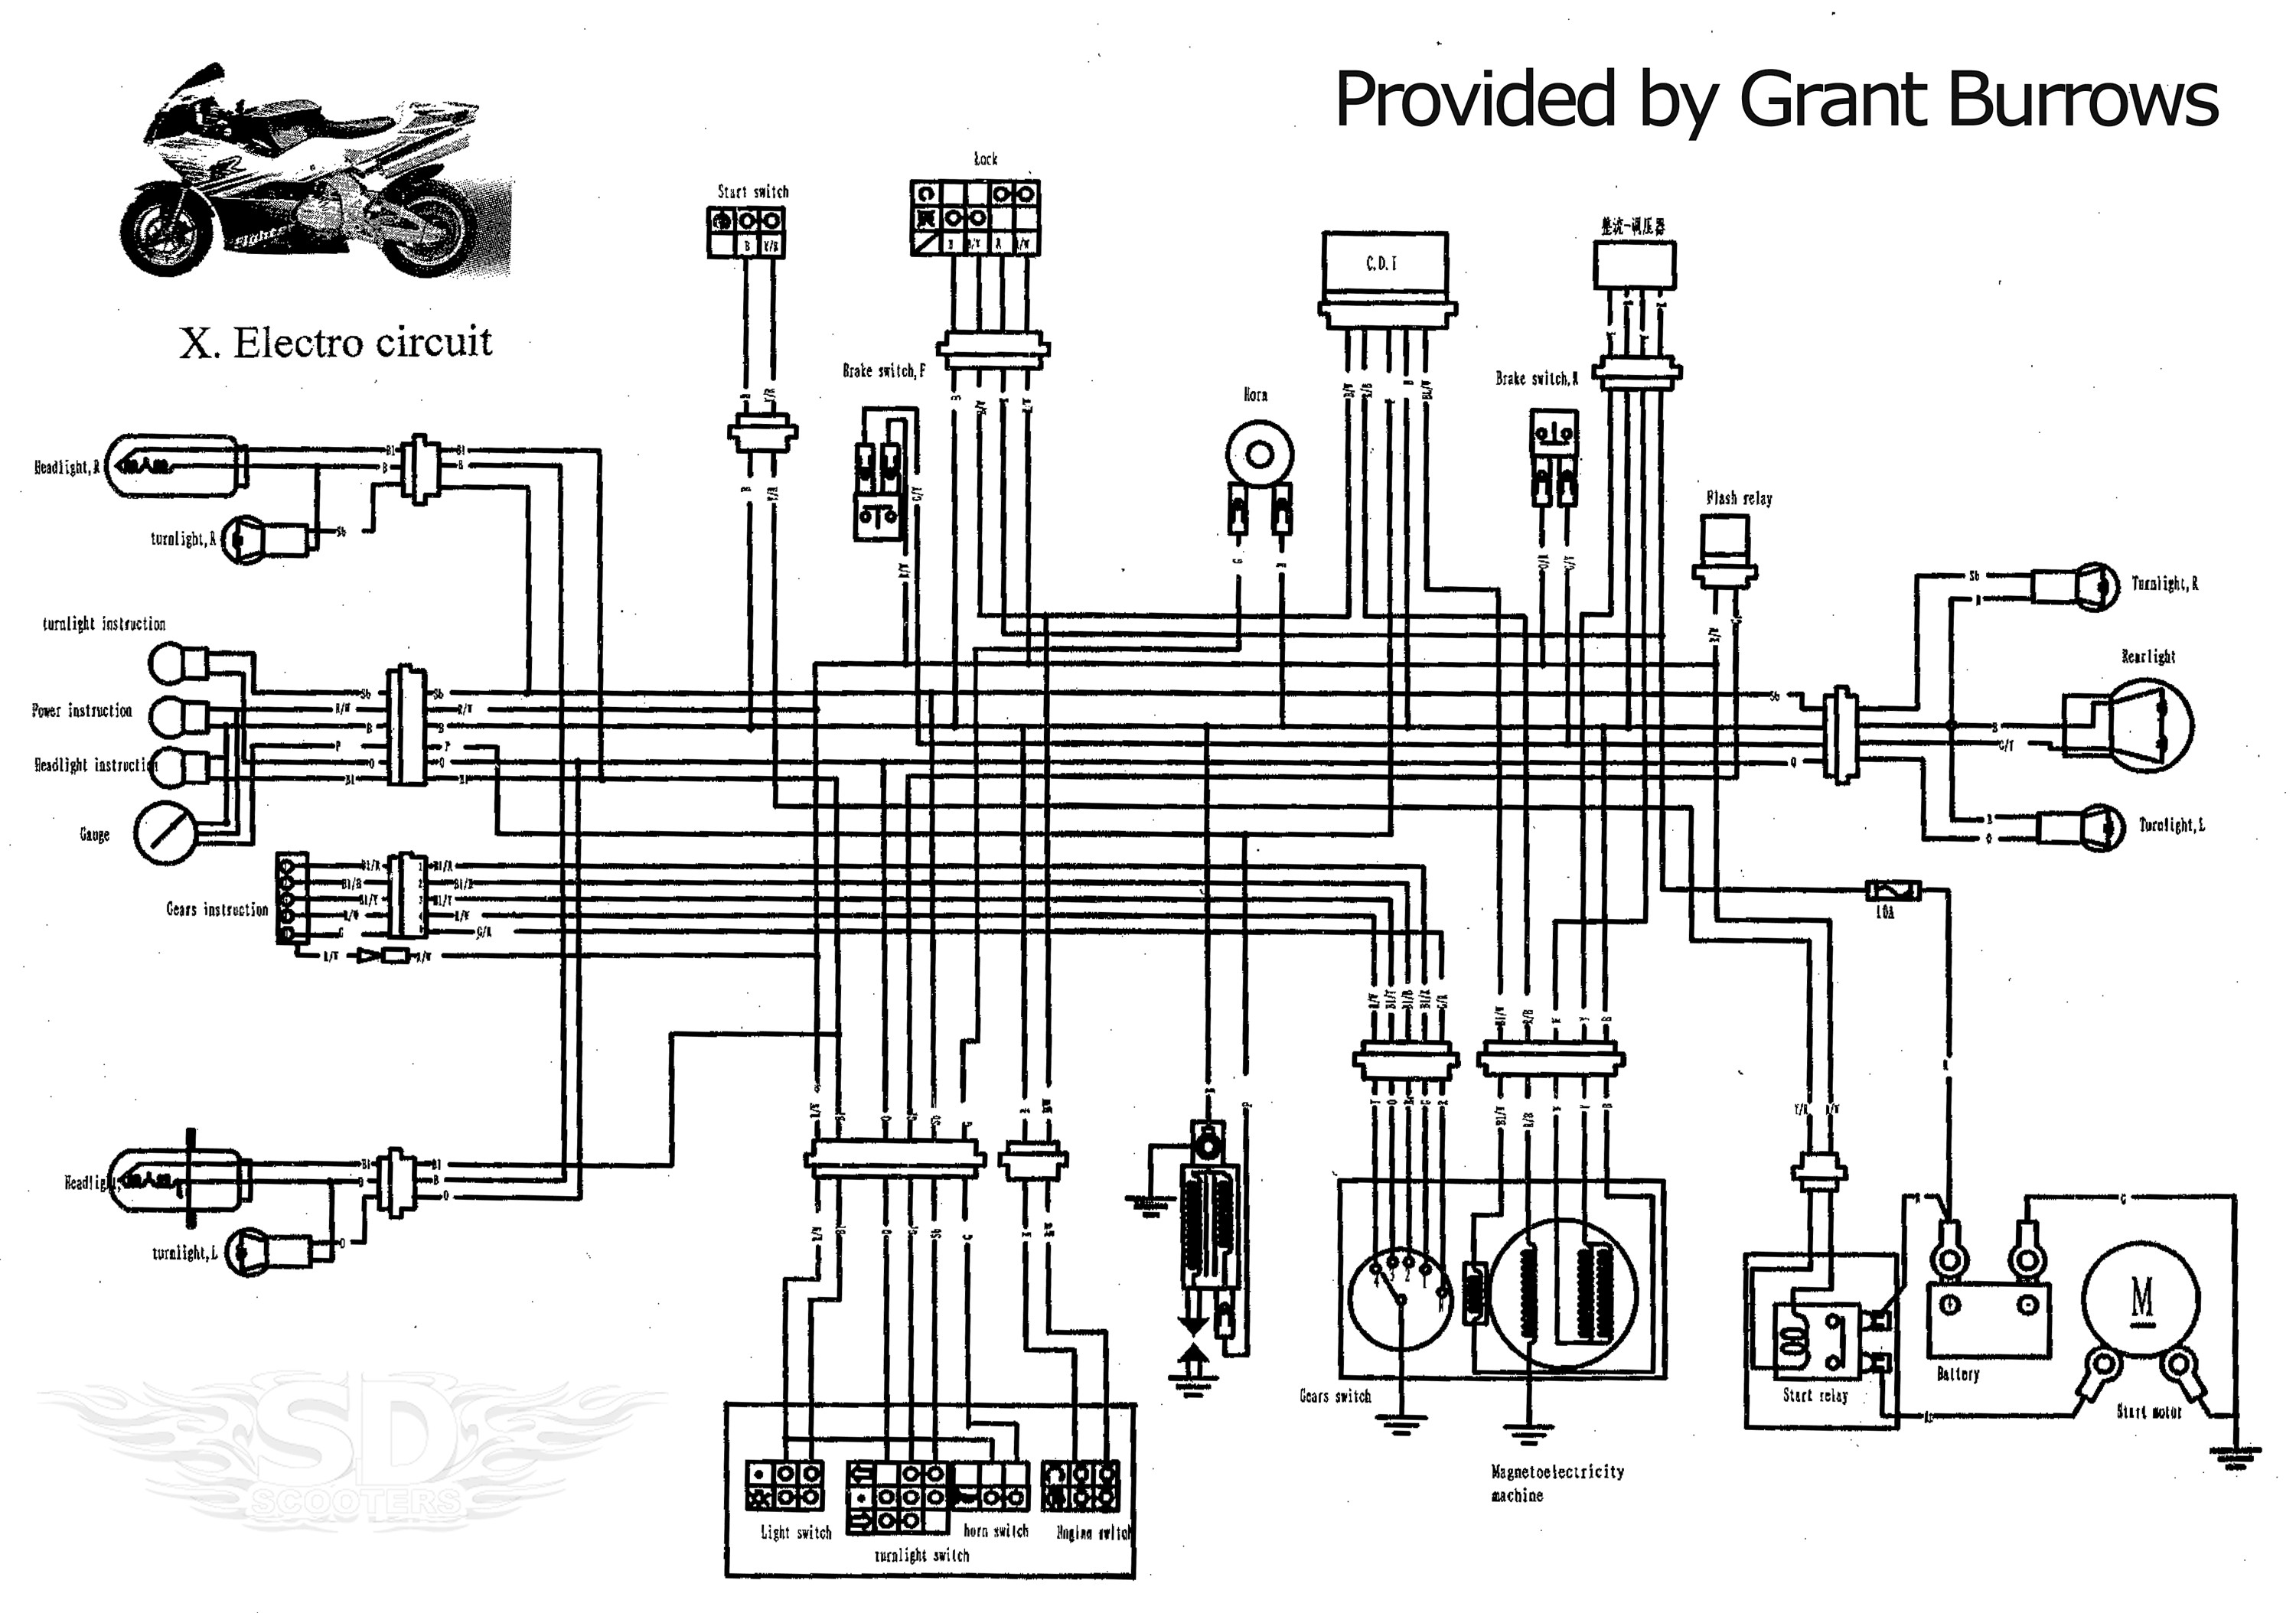 Basic Car Engine Diagram Eye Pocket Bike Wiring Diagram Get Free Image About Wiring Diagram Of Basic Car Engine Diagram